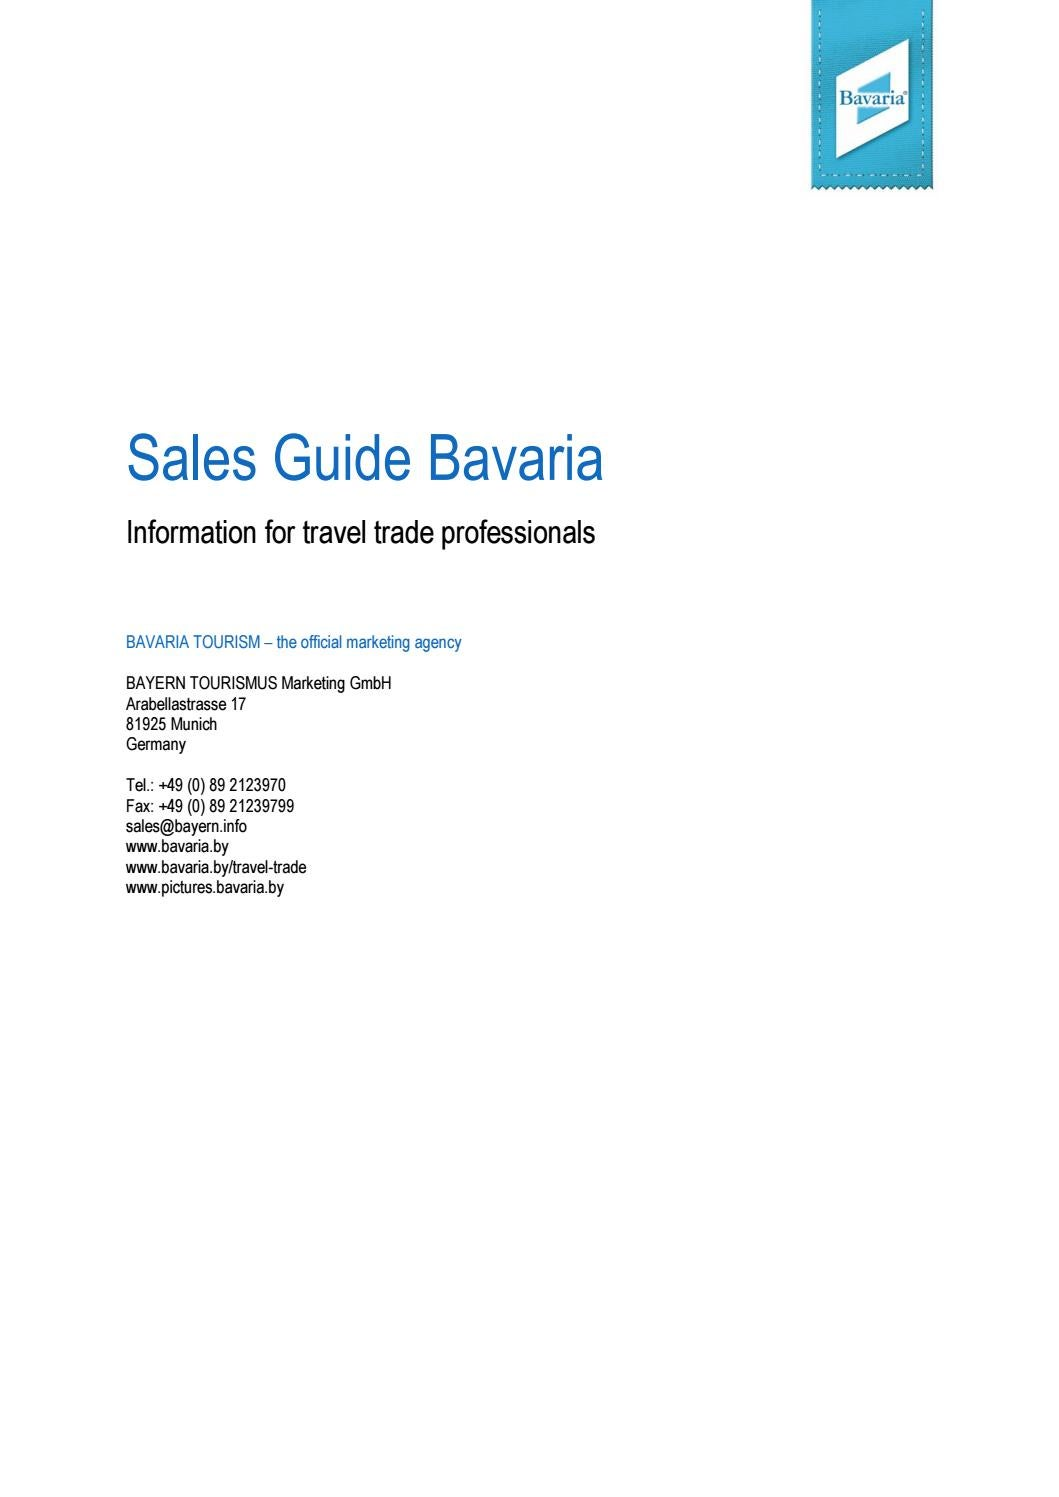 Bavaria sales guide 2017 by Bayern Tourismus - issuu